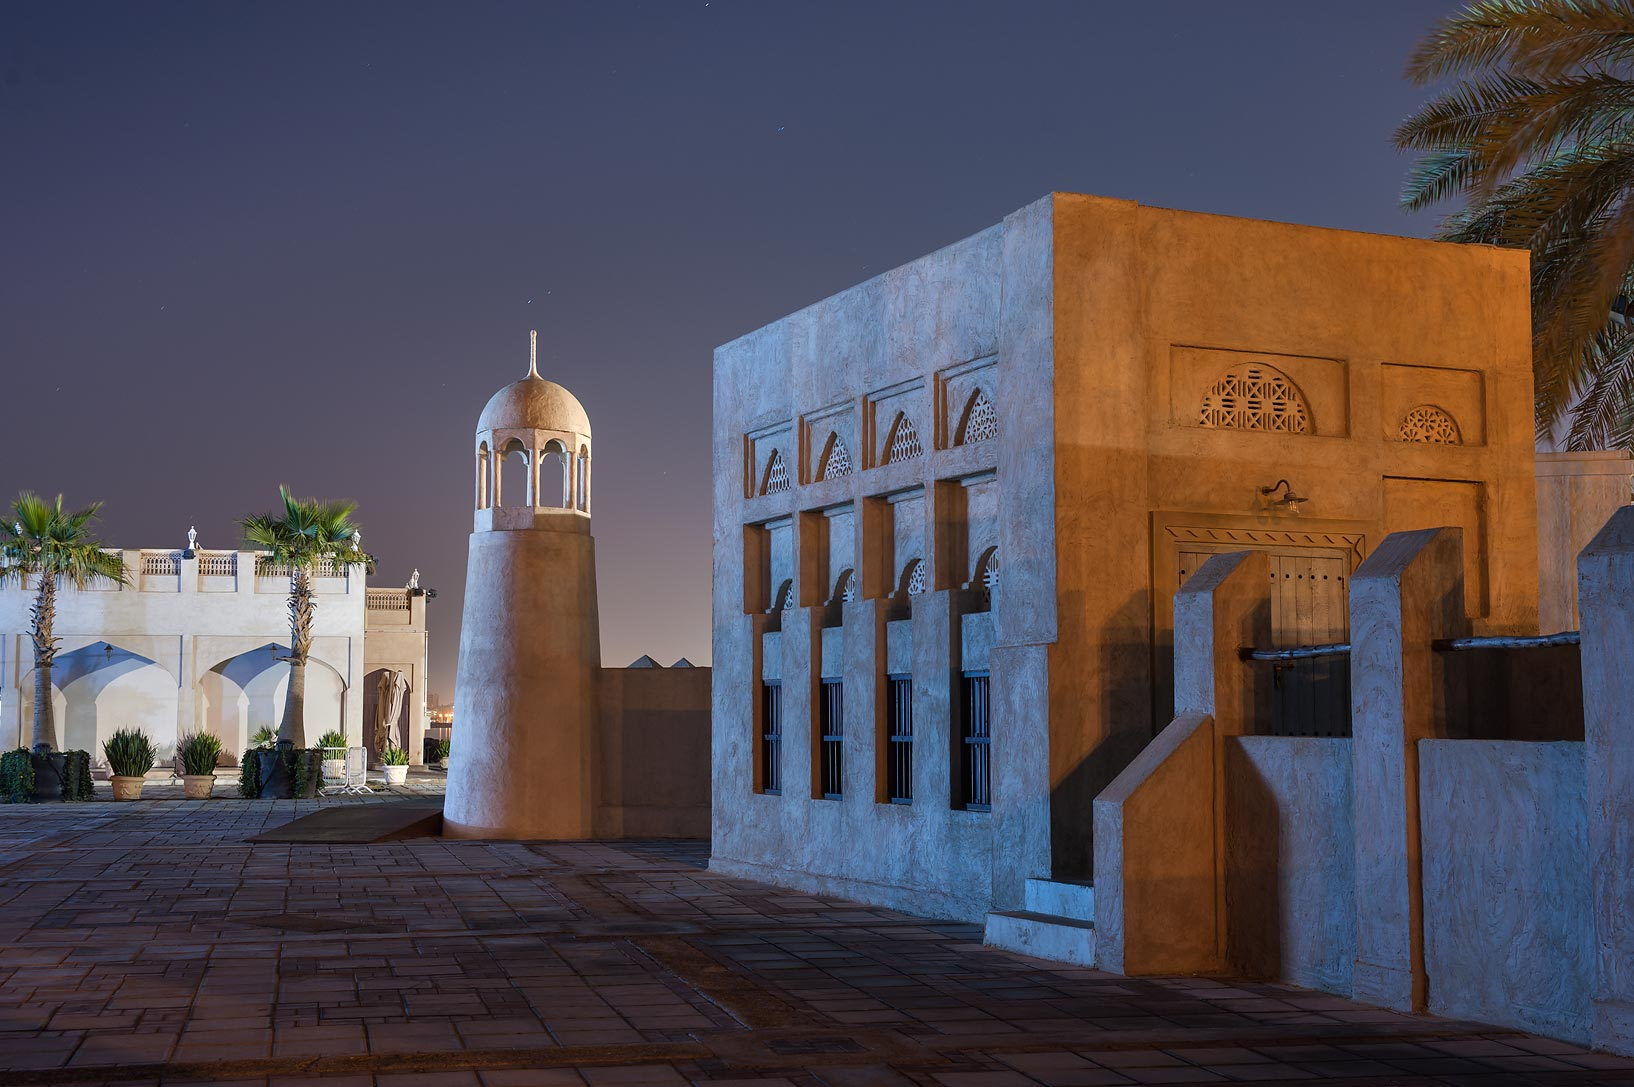 Recently built fake historical mosque near...on Corniche Promenade. Doha, Qatar